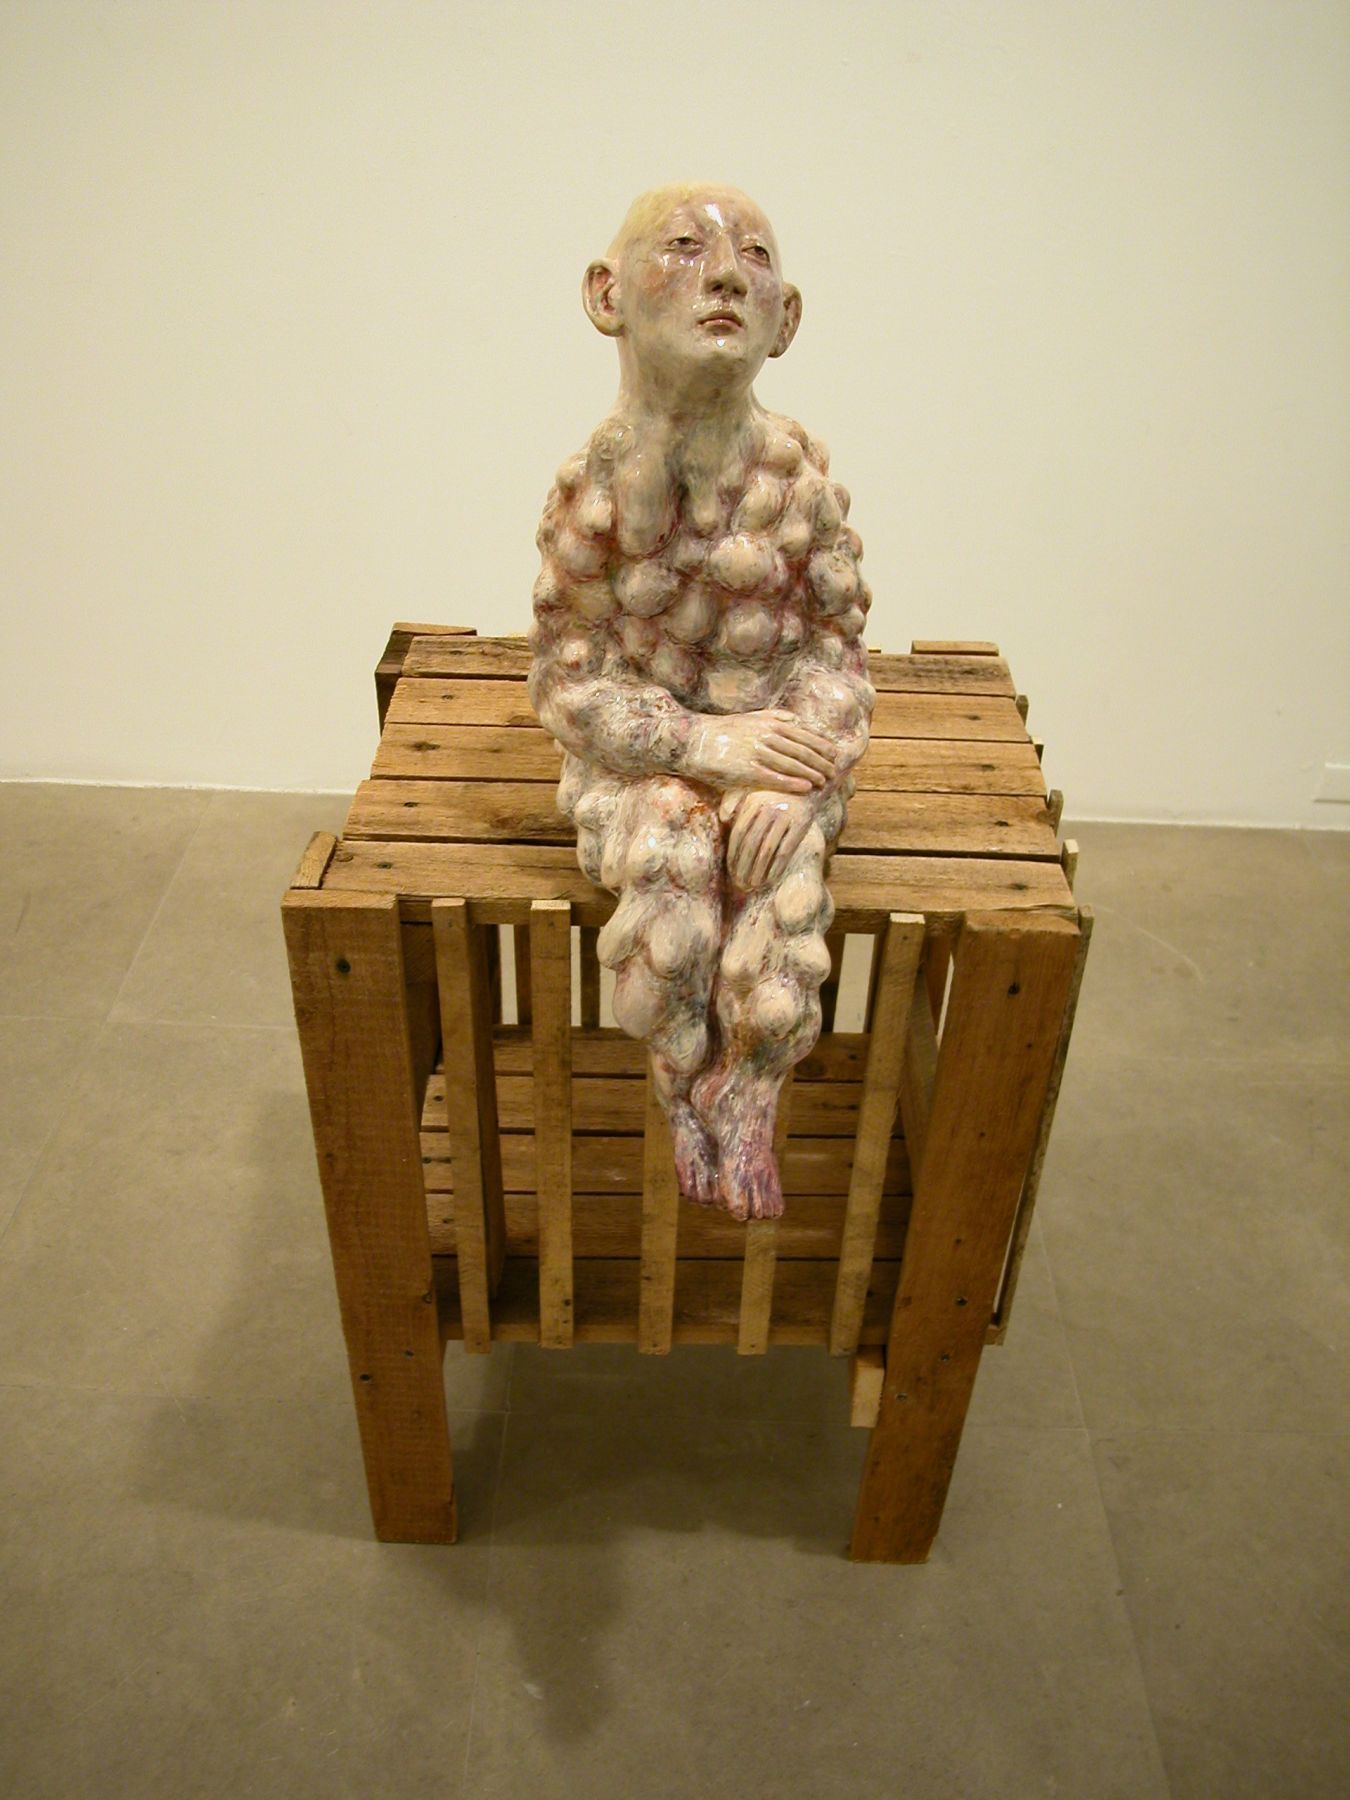 Paloma Varga Weisz,  Ohne Titel, 2003,  clay, enamel and wood, 65 x 24 x 23 inches